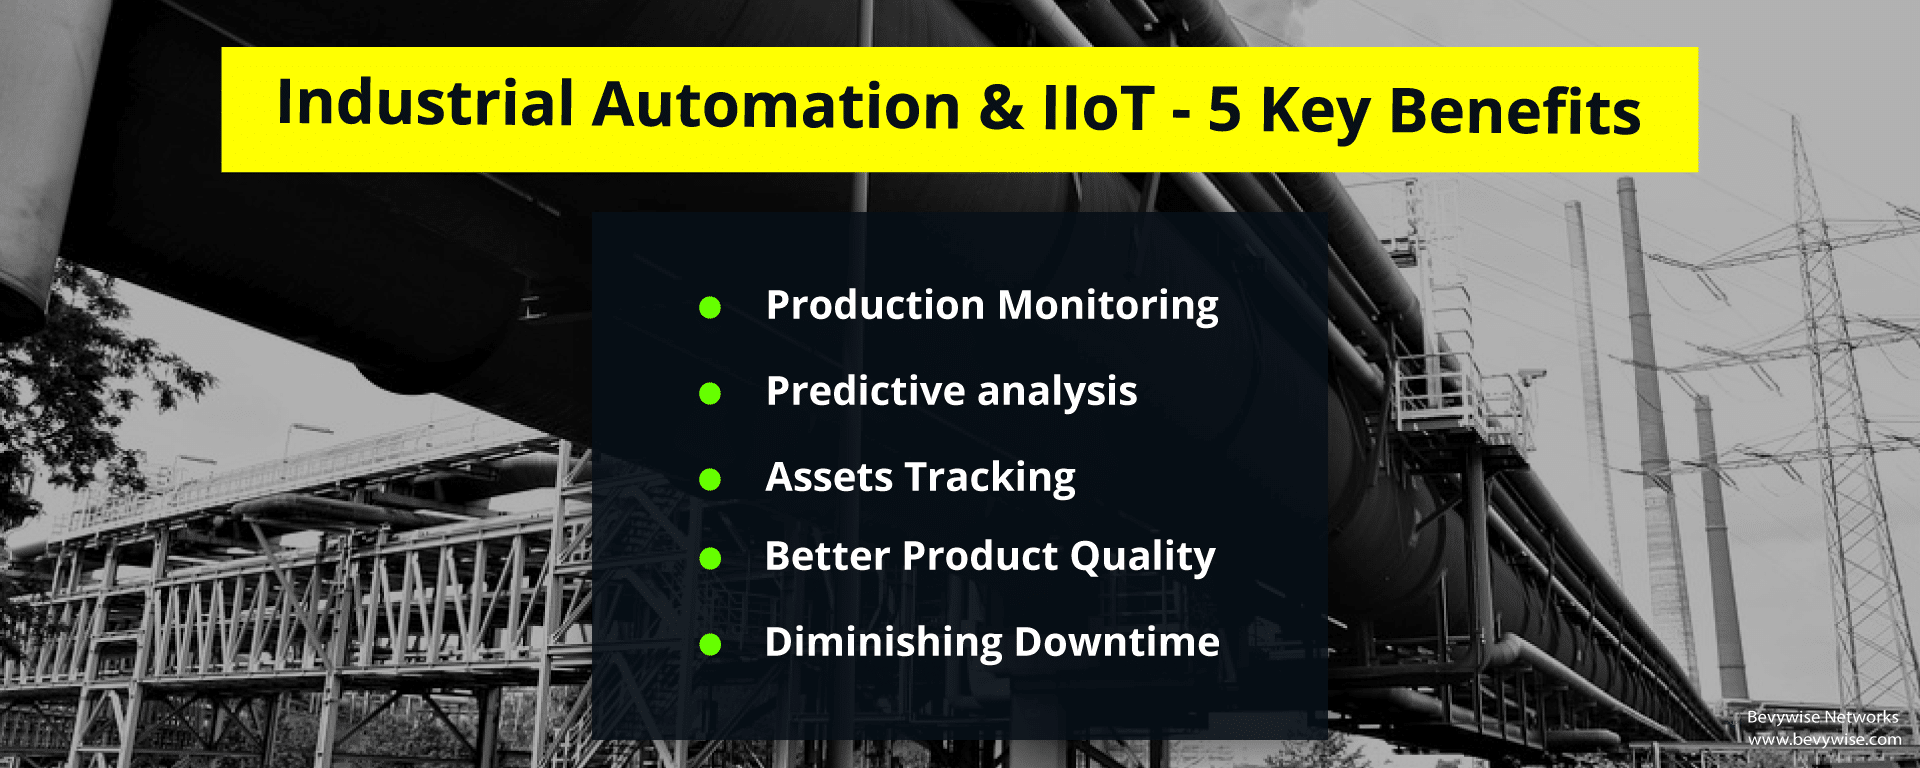 Industrial Automation & IIoT